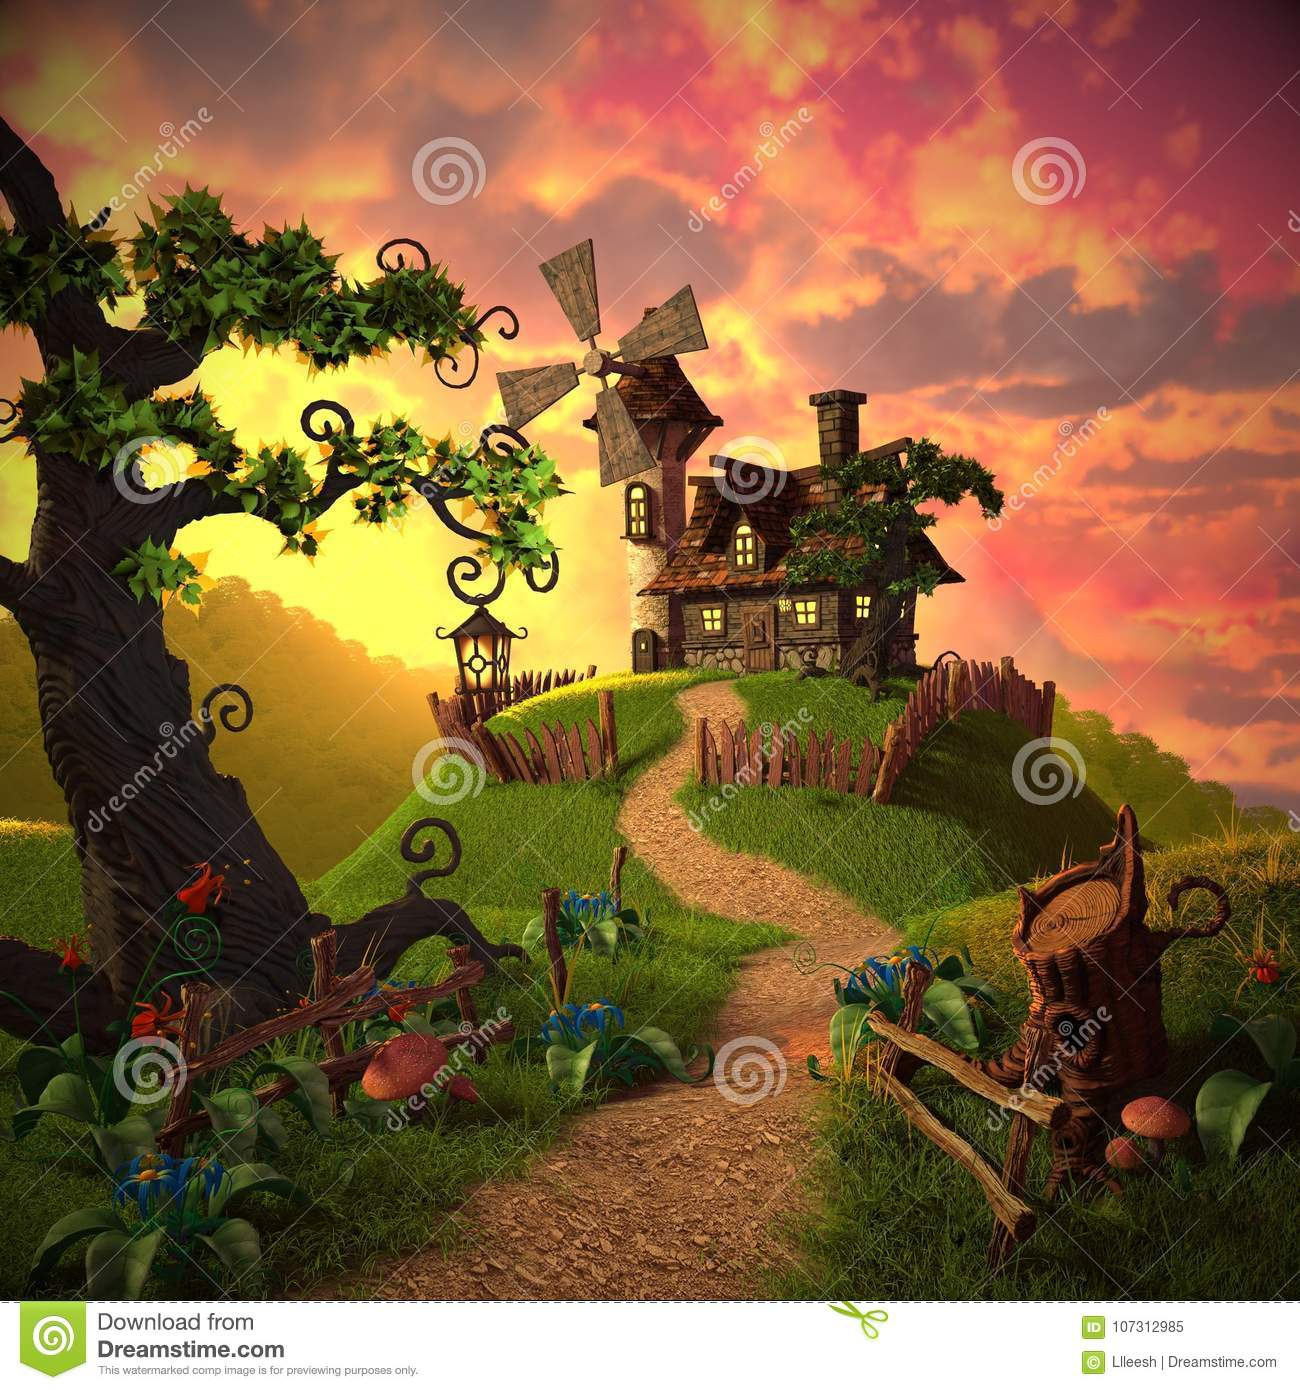 Cartoon landscape with a picture of a house and a windmill, as well as plants and wood.